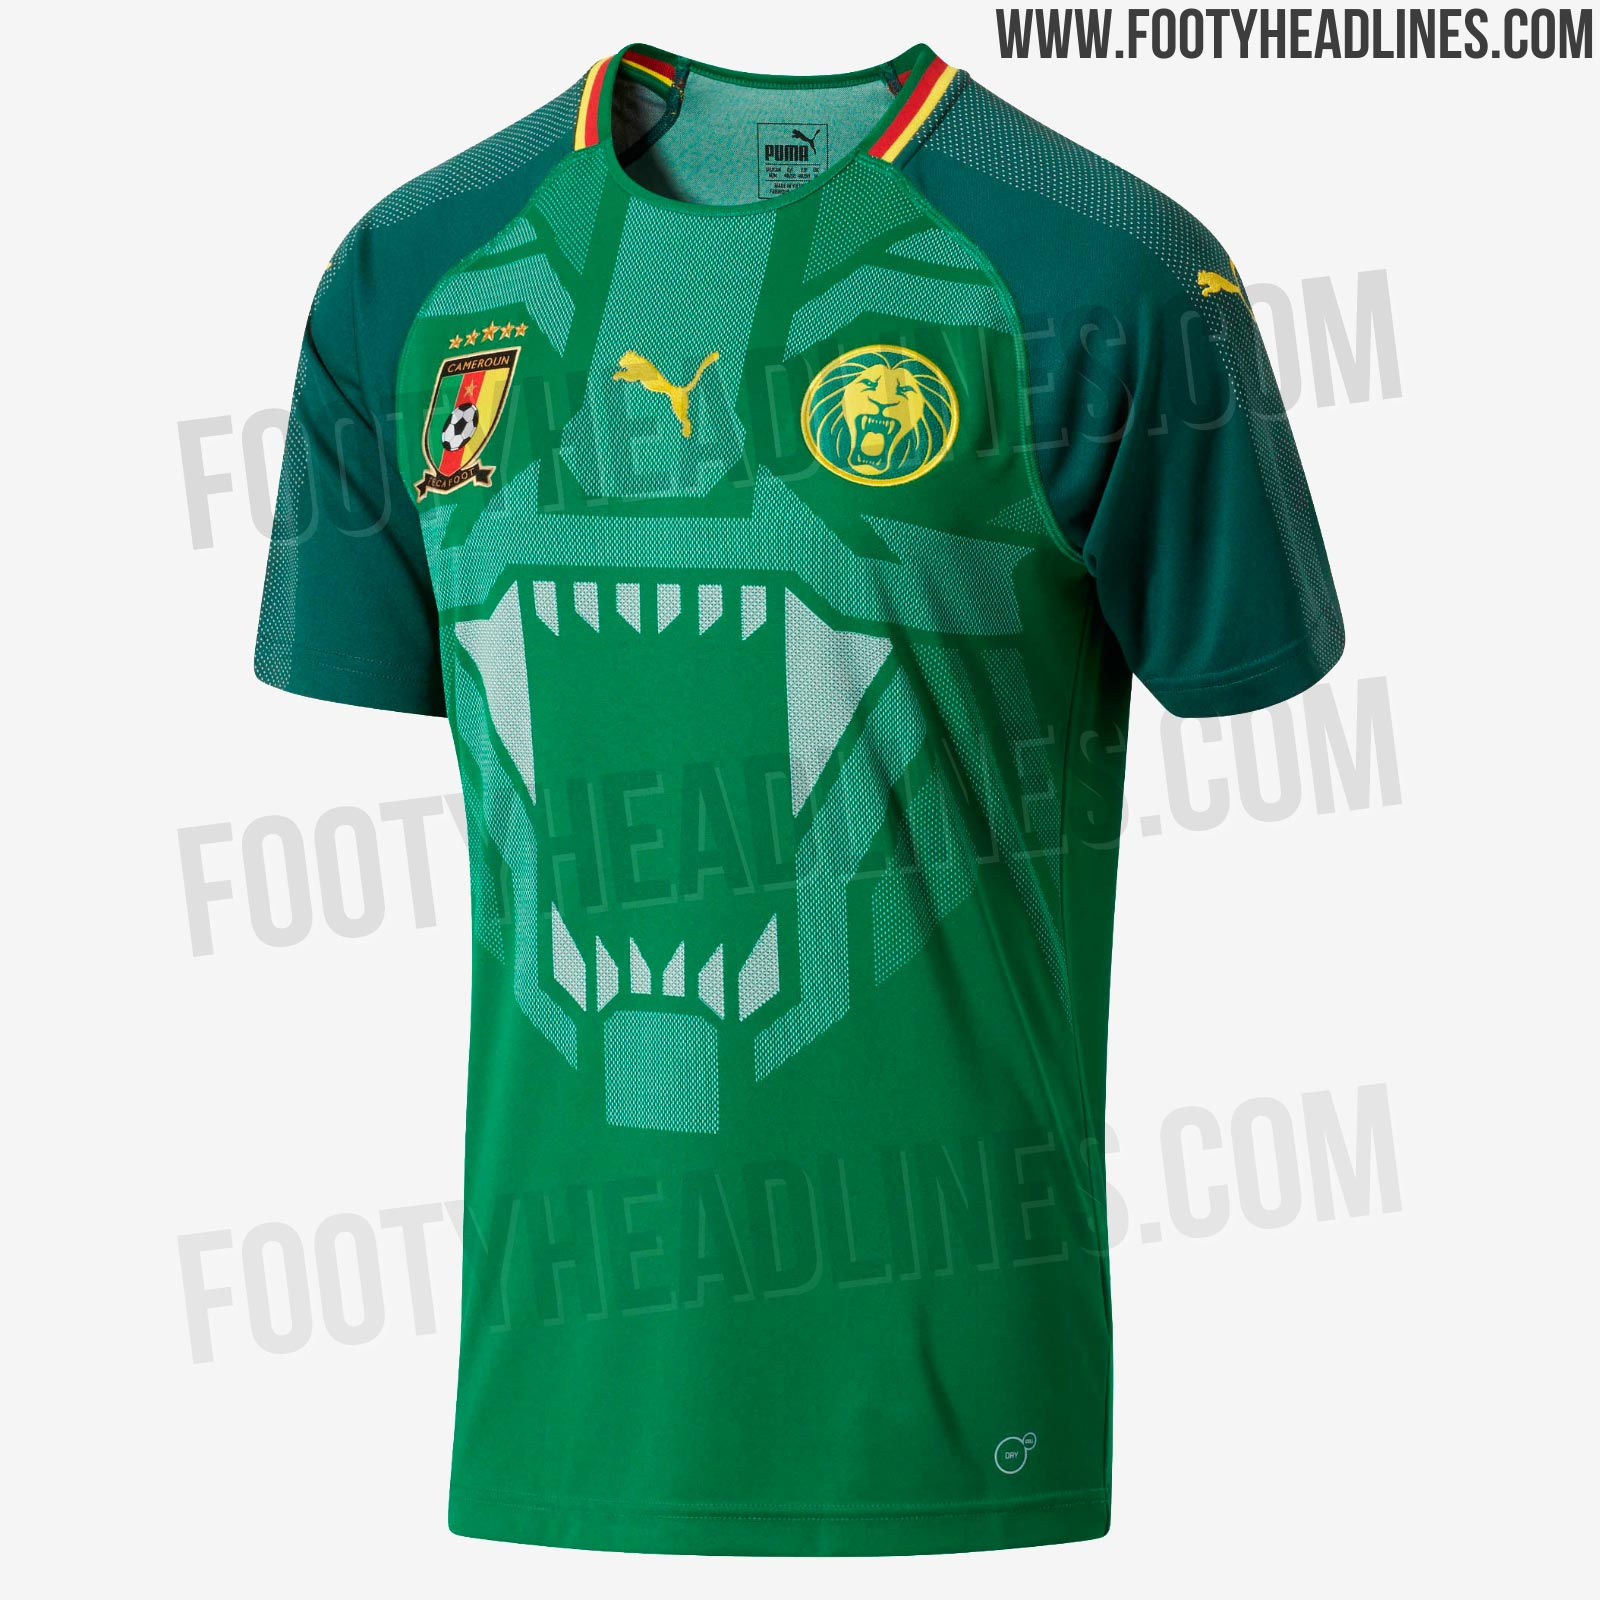 cameroon-2018-home-kit-2.jpg